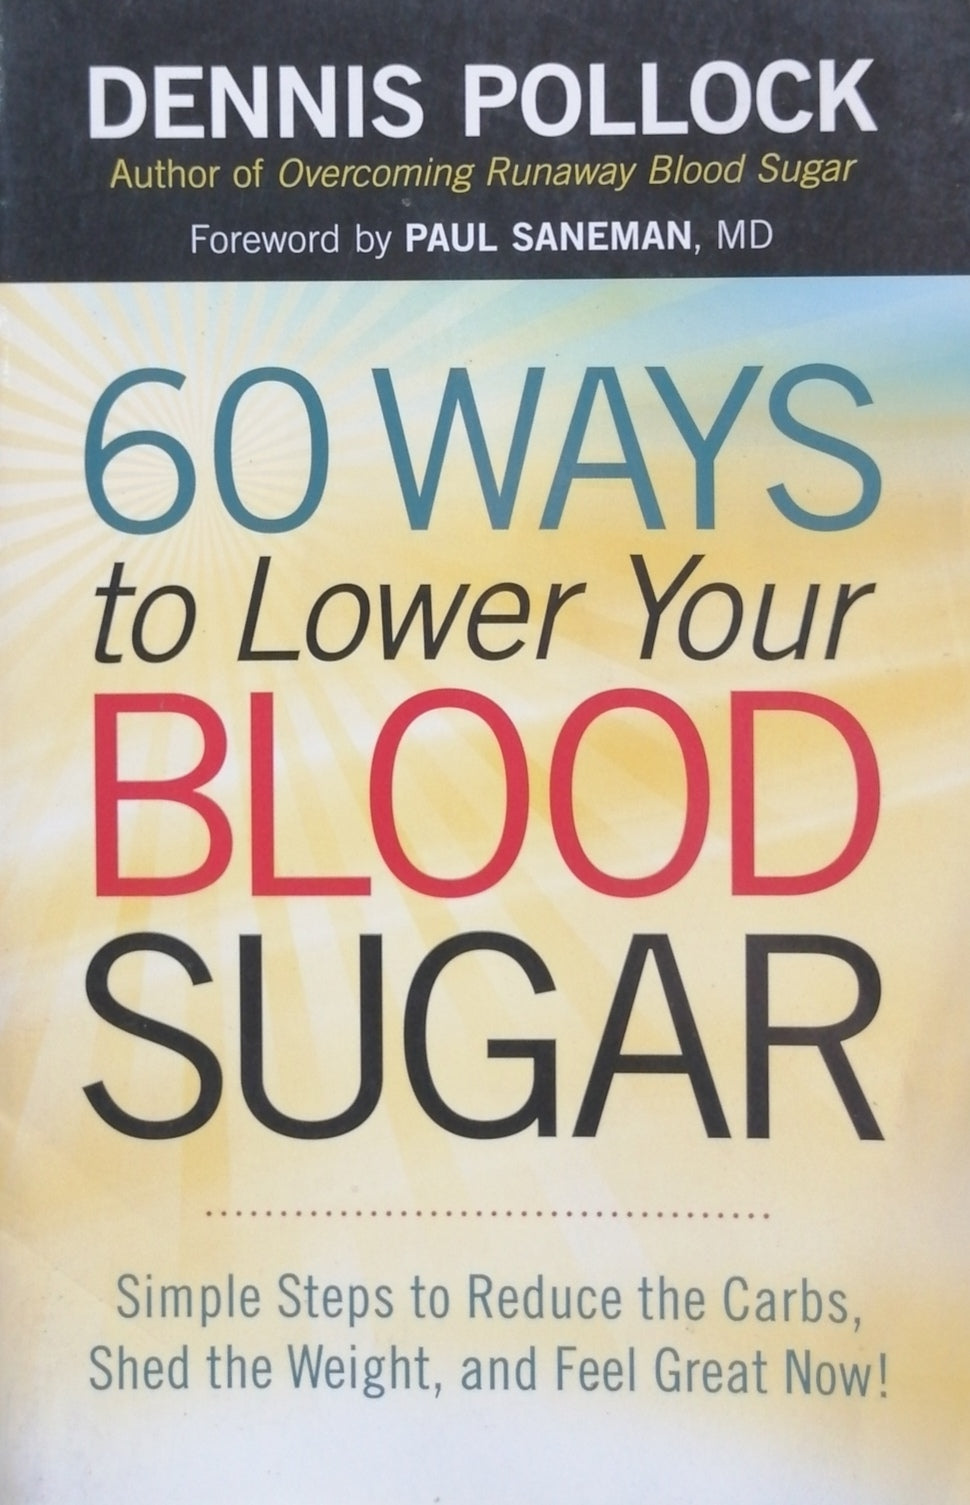 60 ways to lower your blood sugar by Dennis Pollock